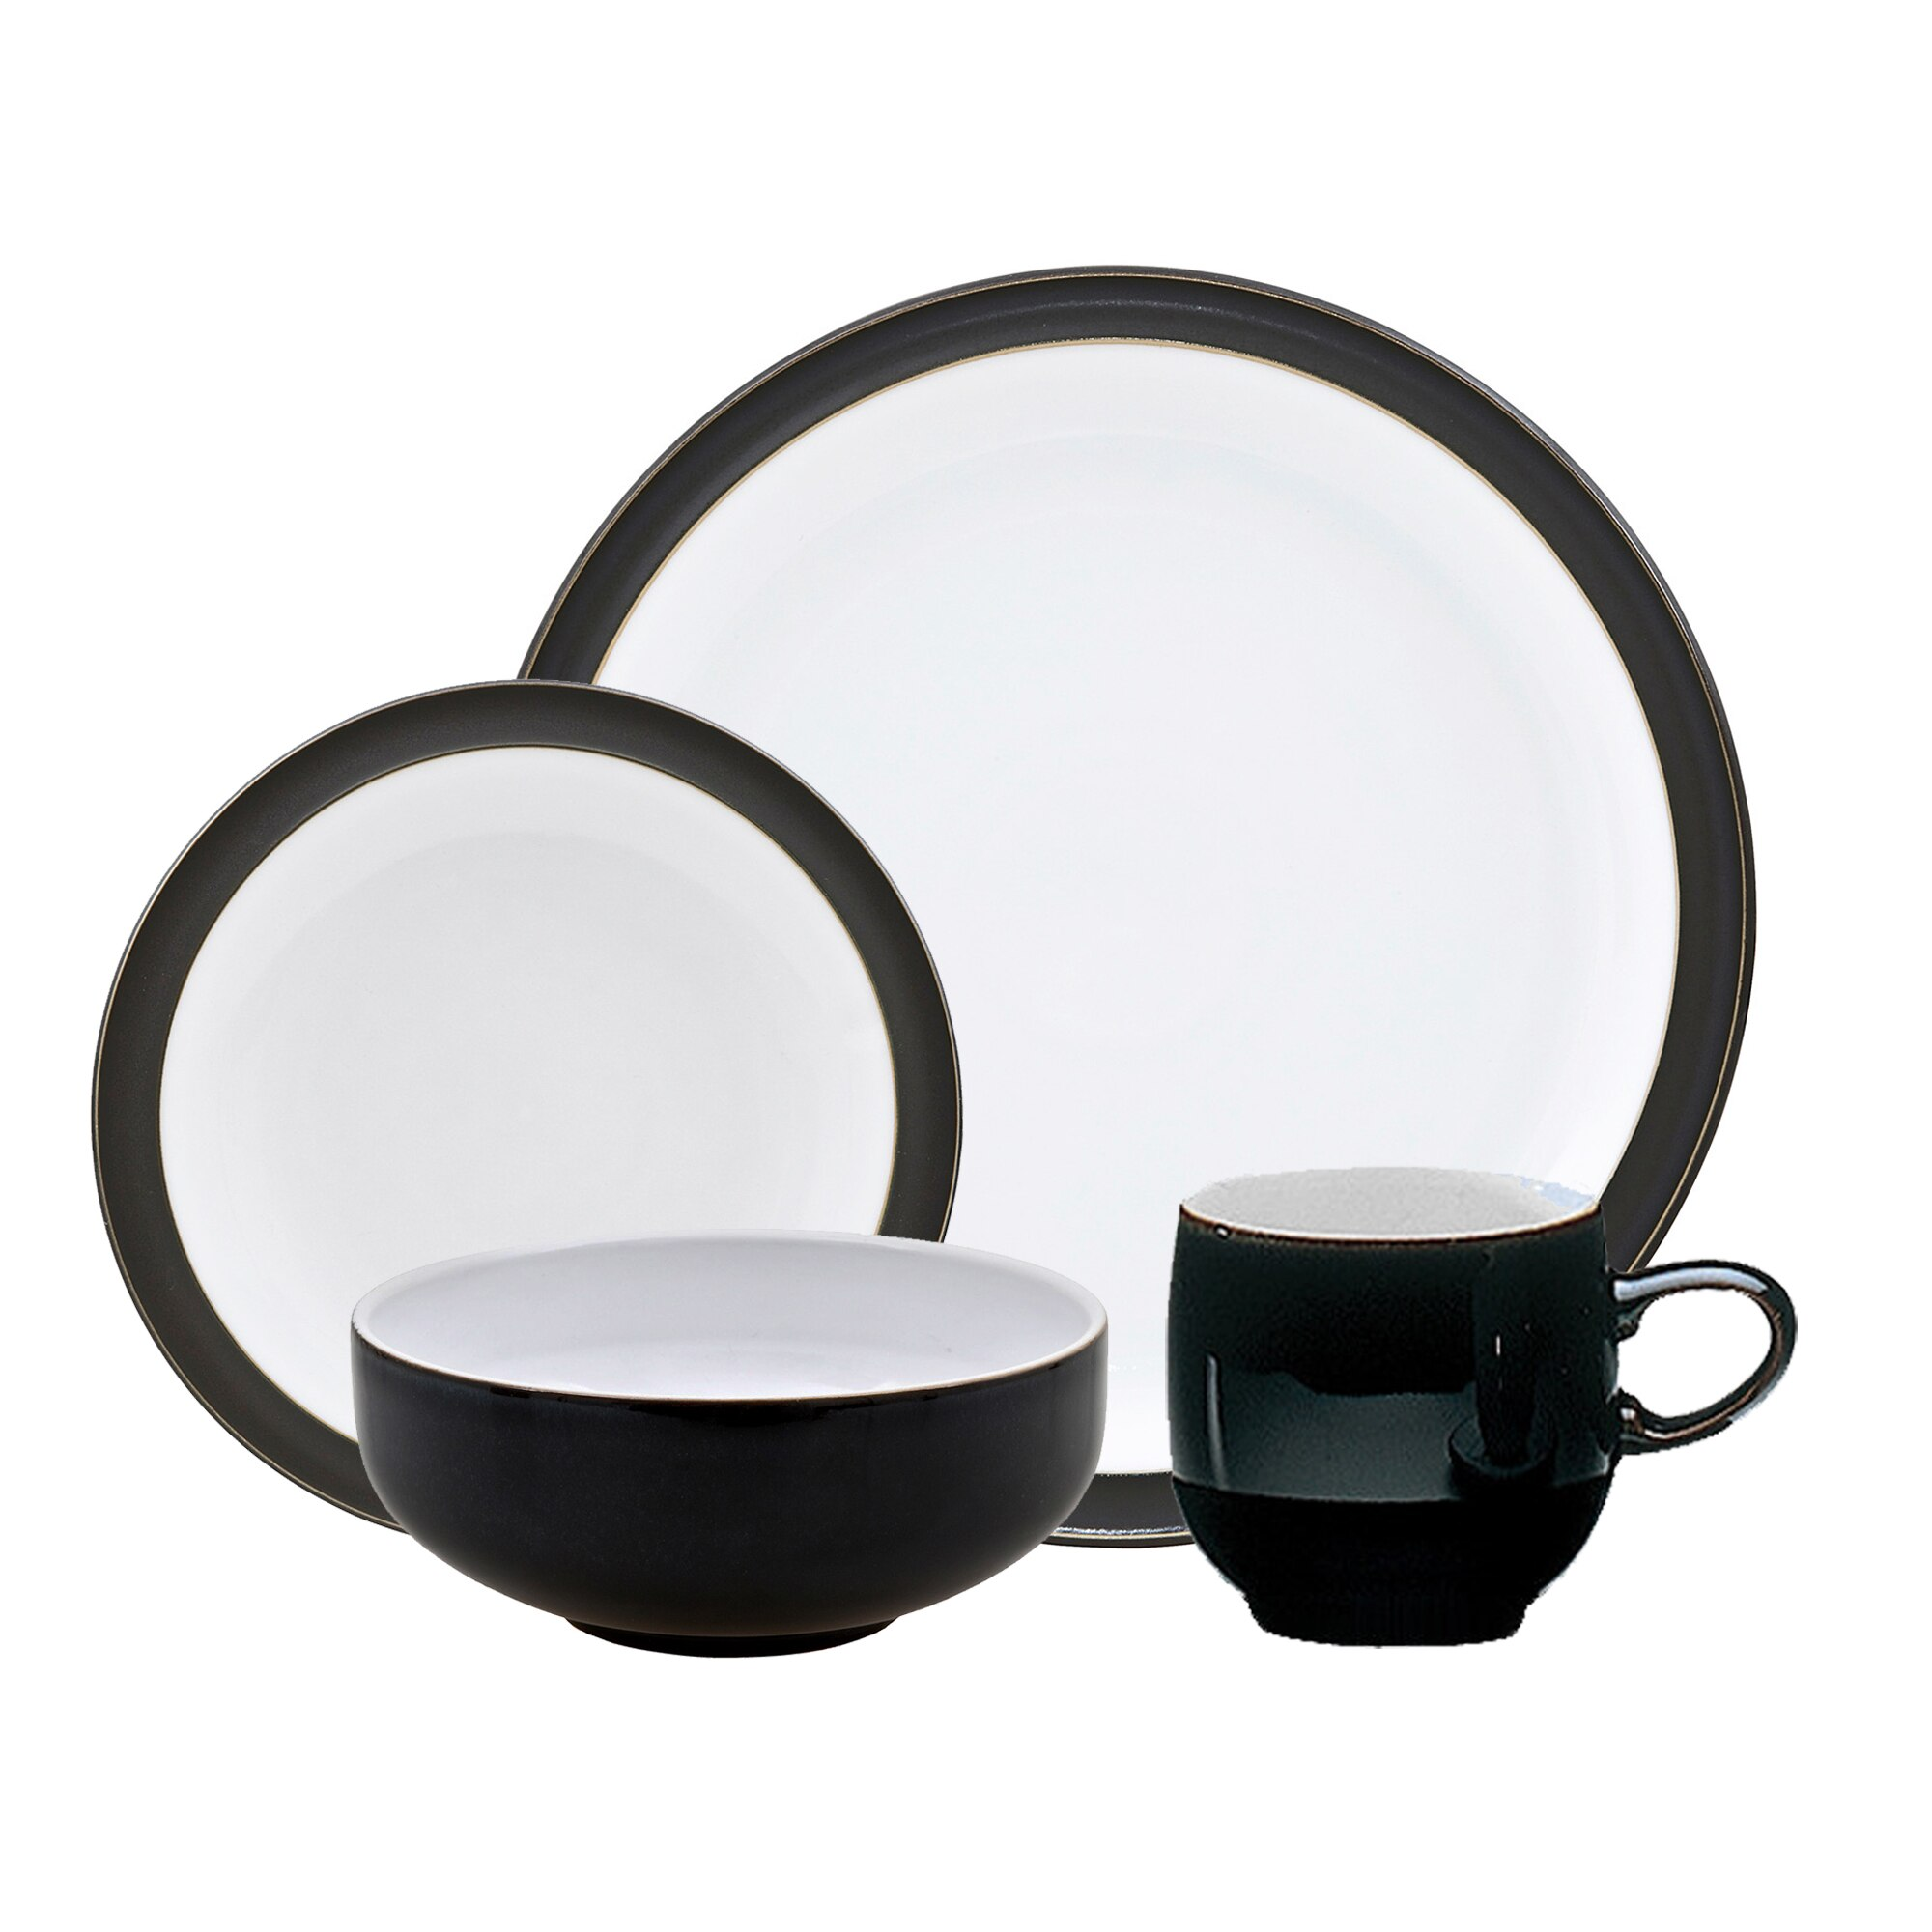 Crockery Jet Black 4 Piece Box Set